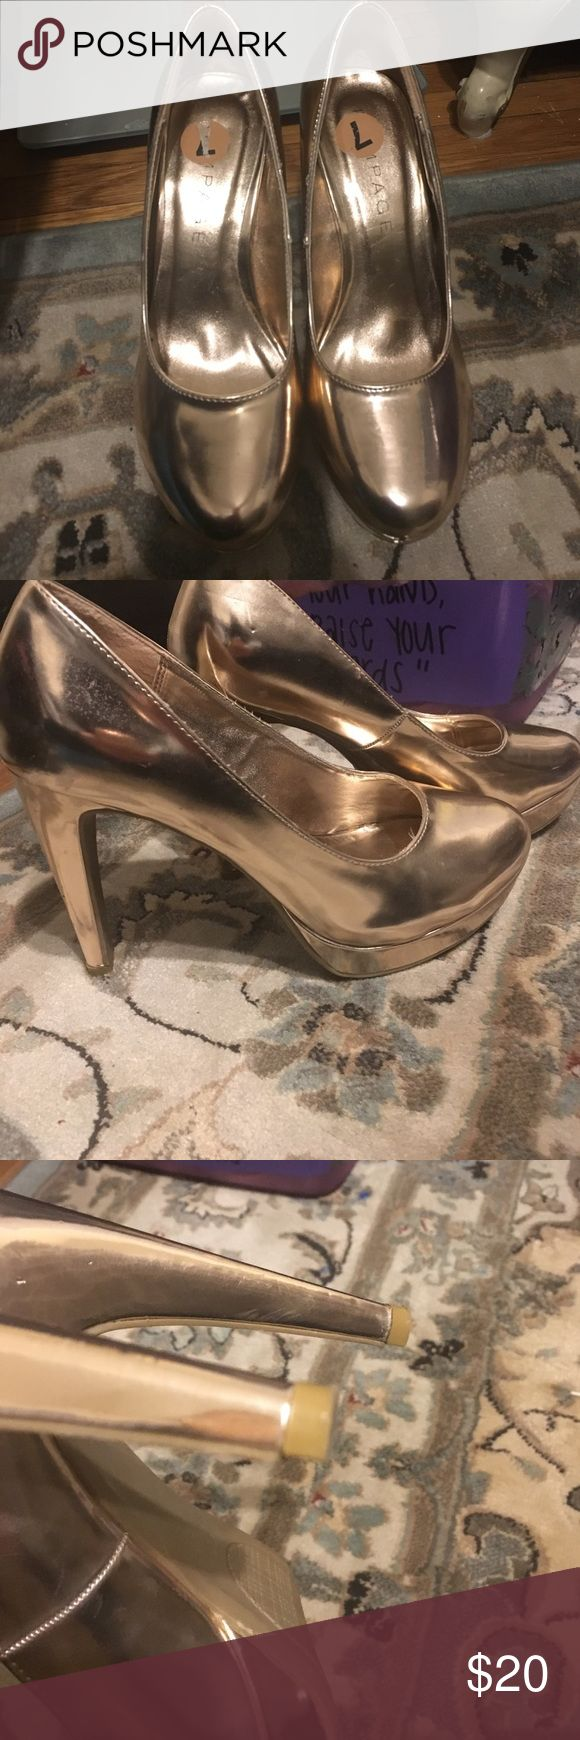 Champagne heels Rampage champagne colored heels. Heels still in good condition as pictured Rampage Shoes Heels